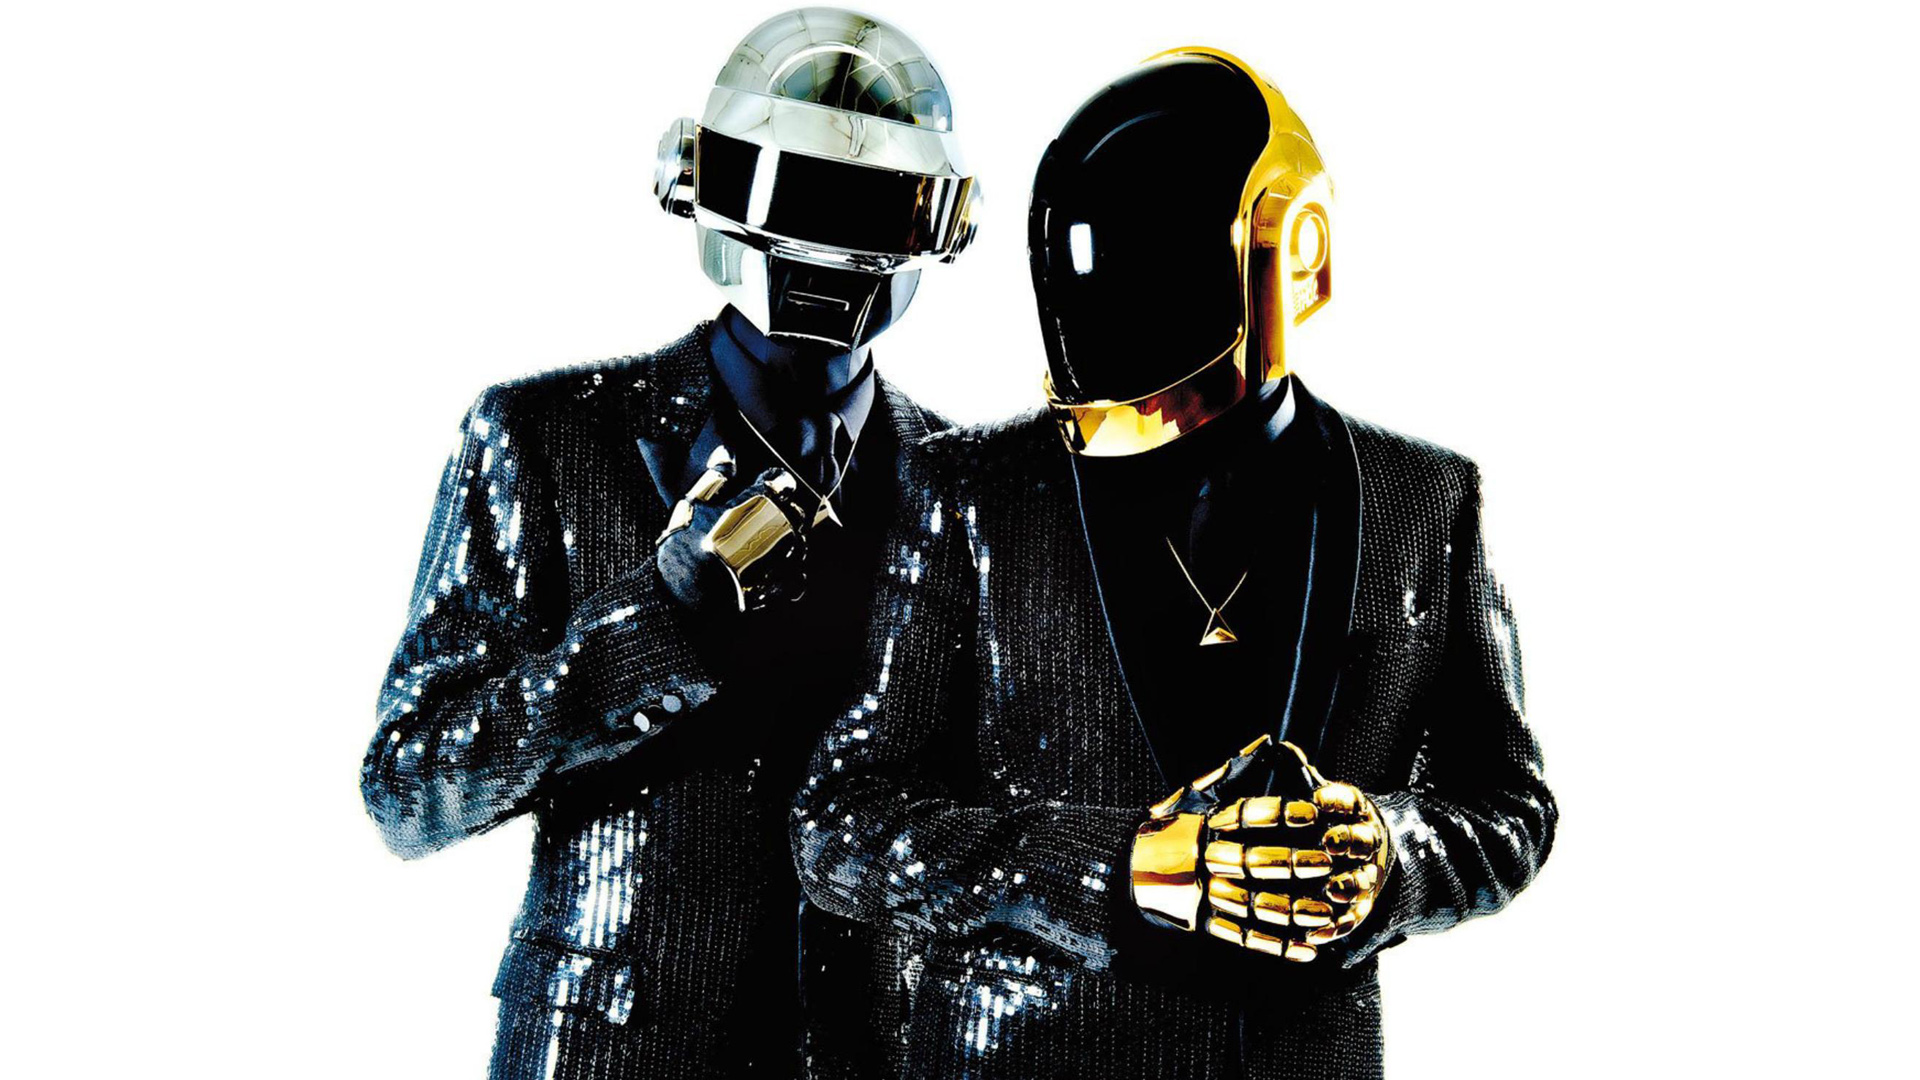 ... Daft Punk Wallpaper ...